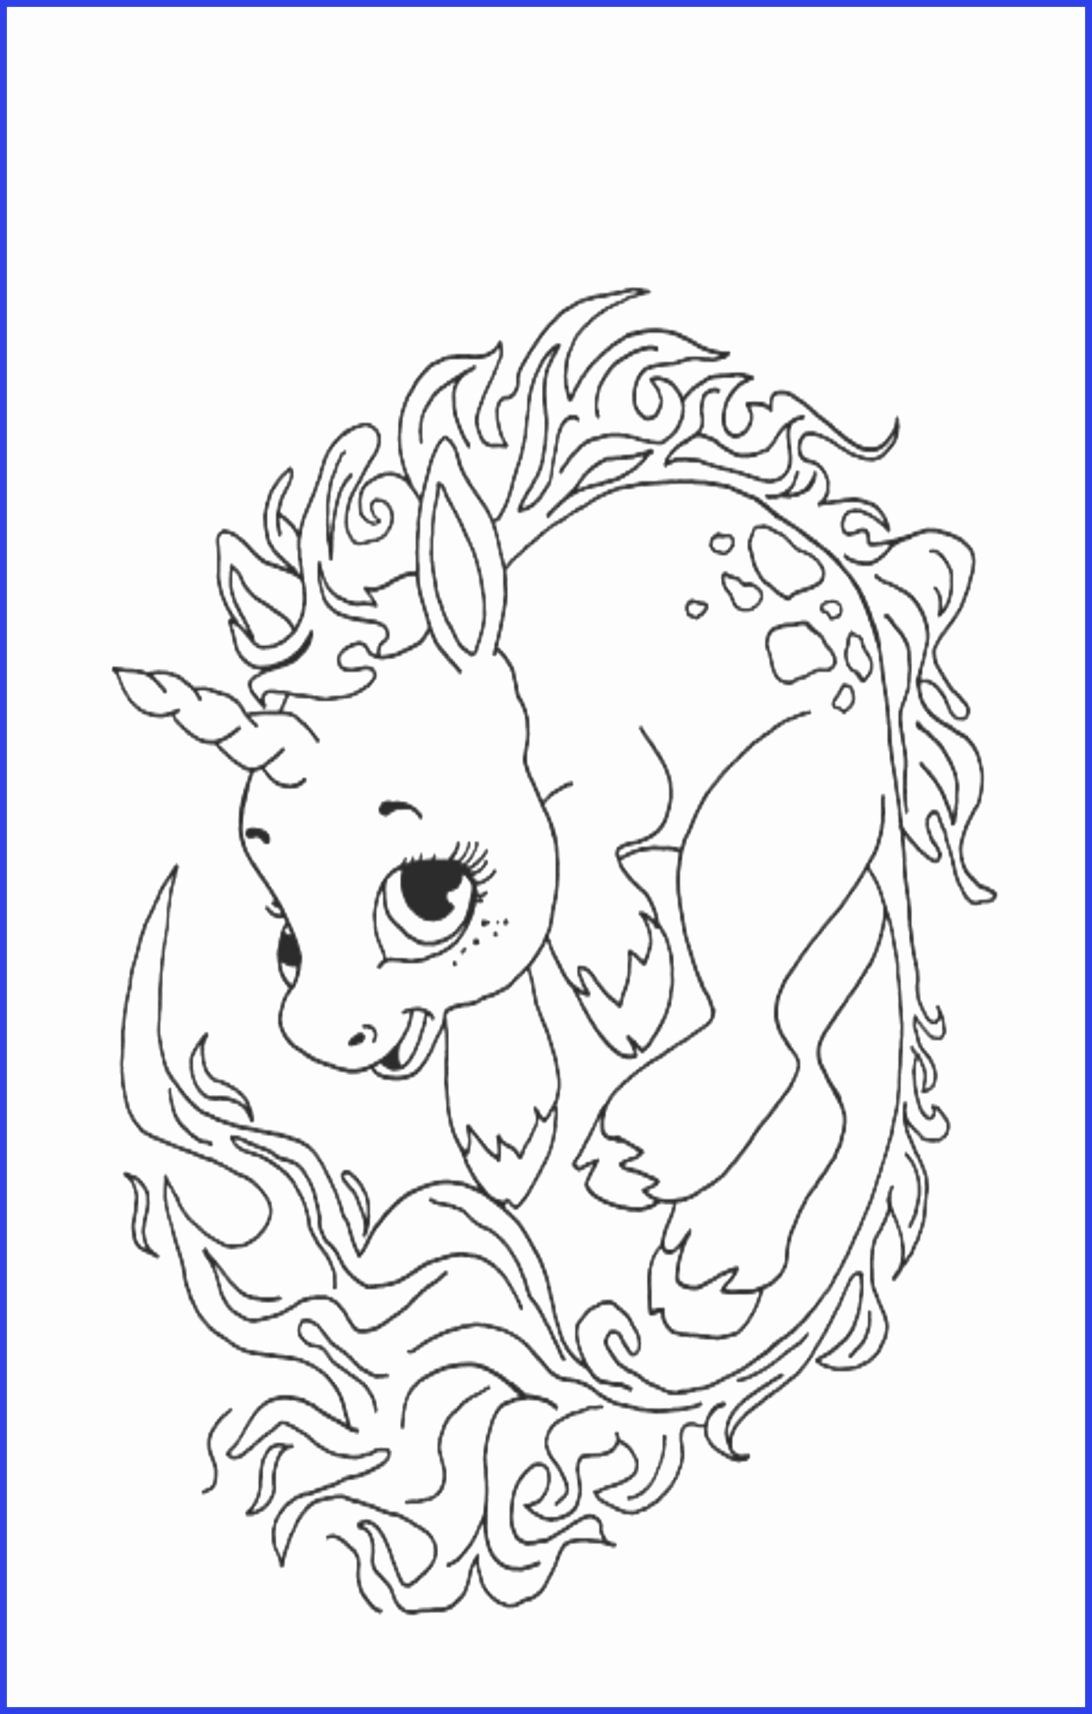 Space Coloring Pages For Kids Inspirational Angry Birds Space Printable Coloring Pages In 2020 Space Coloring Pages Summer Coloring Pages Mermaid Coloring Pages [ 1714 x 1092 Pixel ]